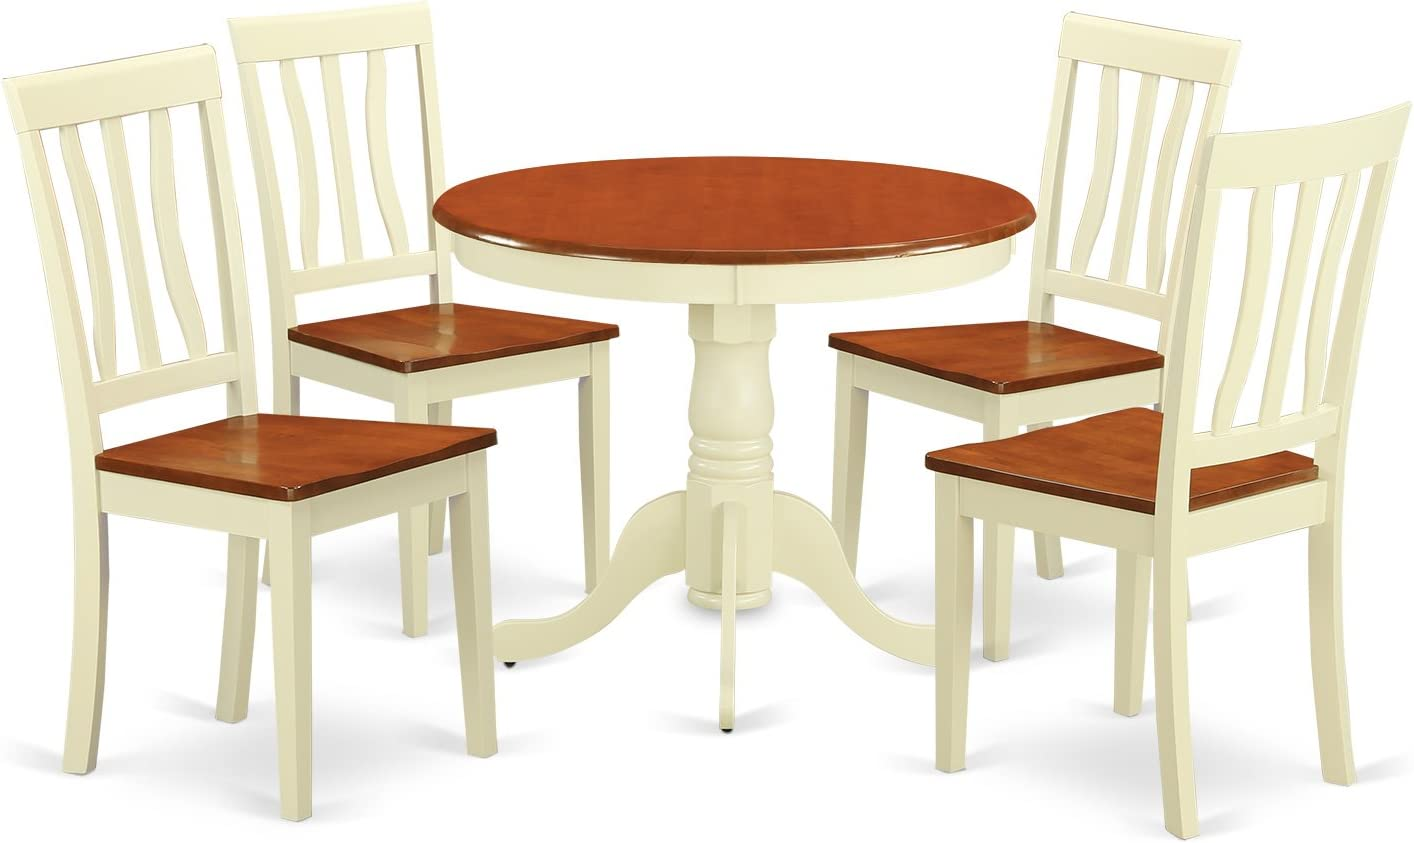 ANTI5-WHI-W 5 PC small Kitchen Table and Chairs set-Kitchen Table plus 4 Kitchen Dining Chairs